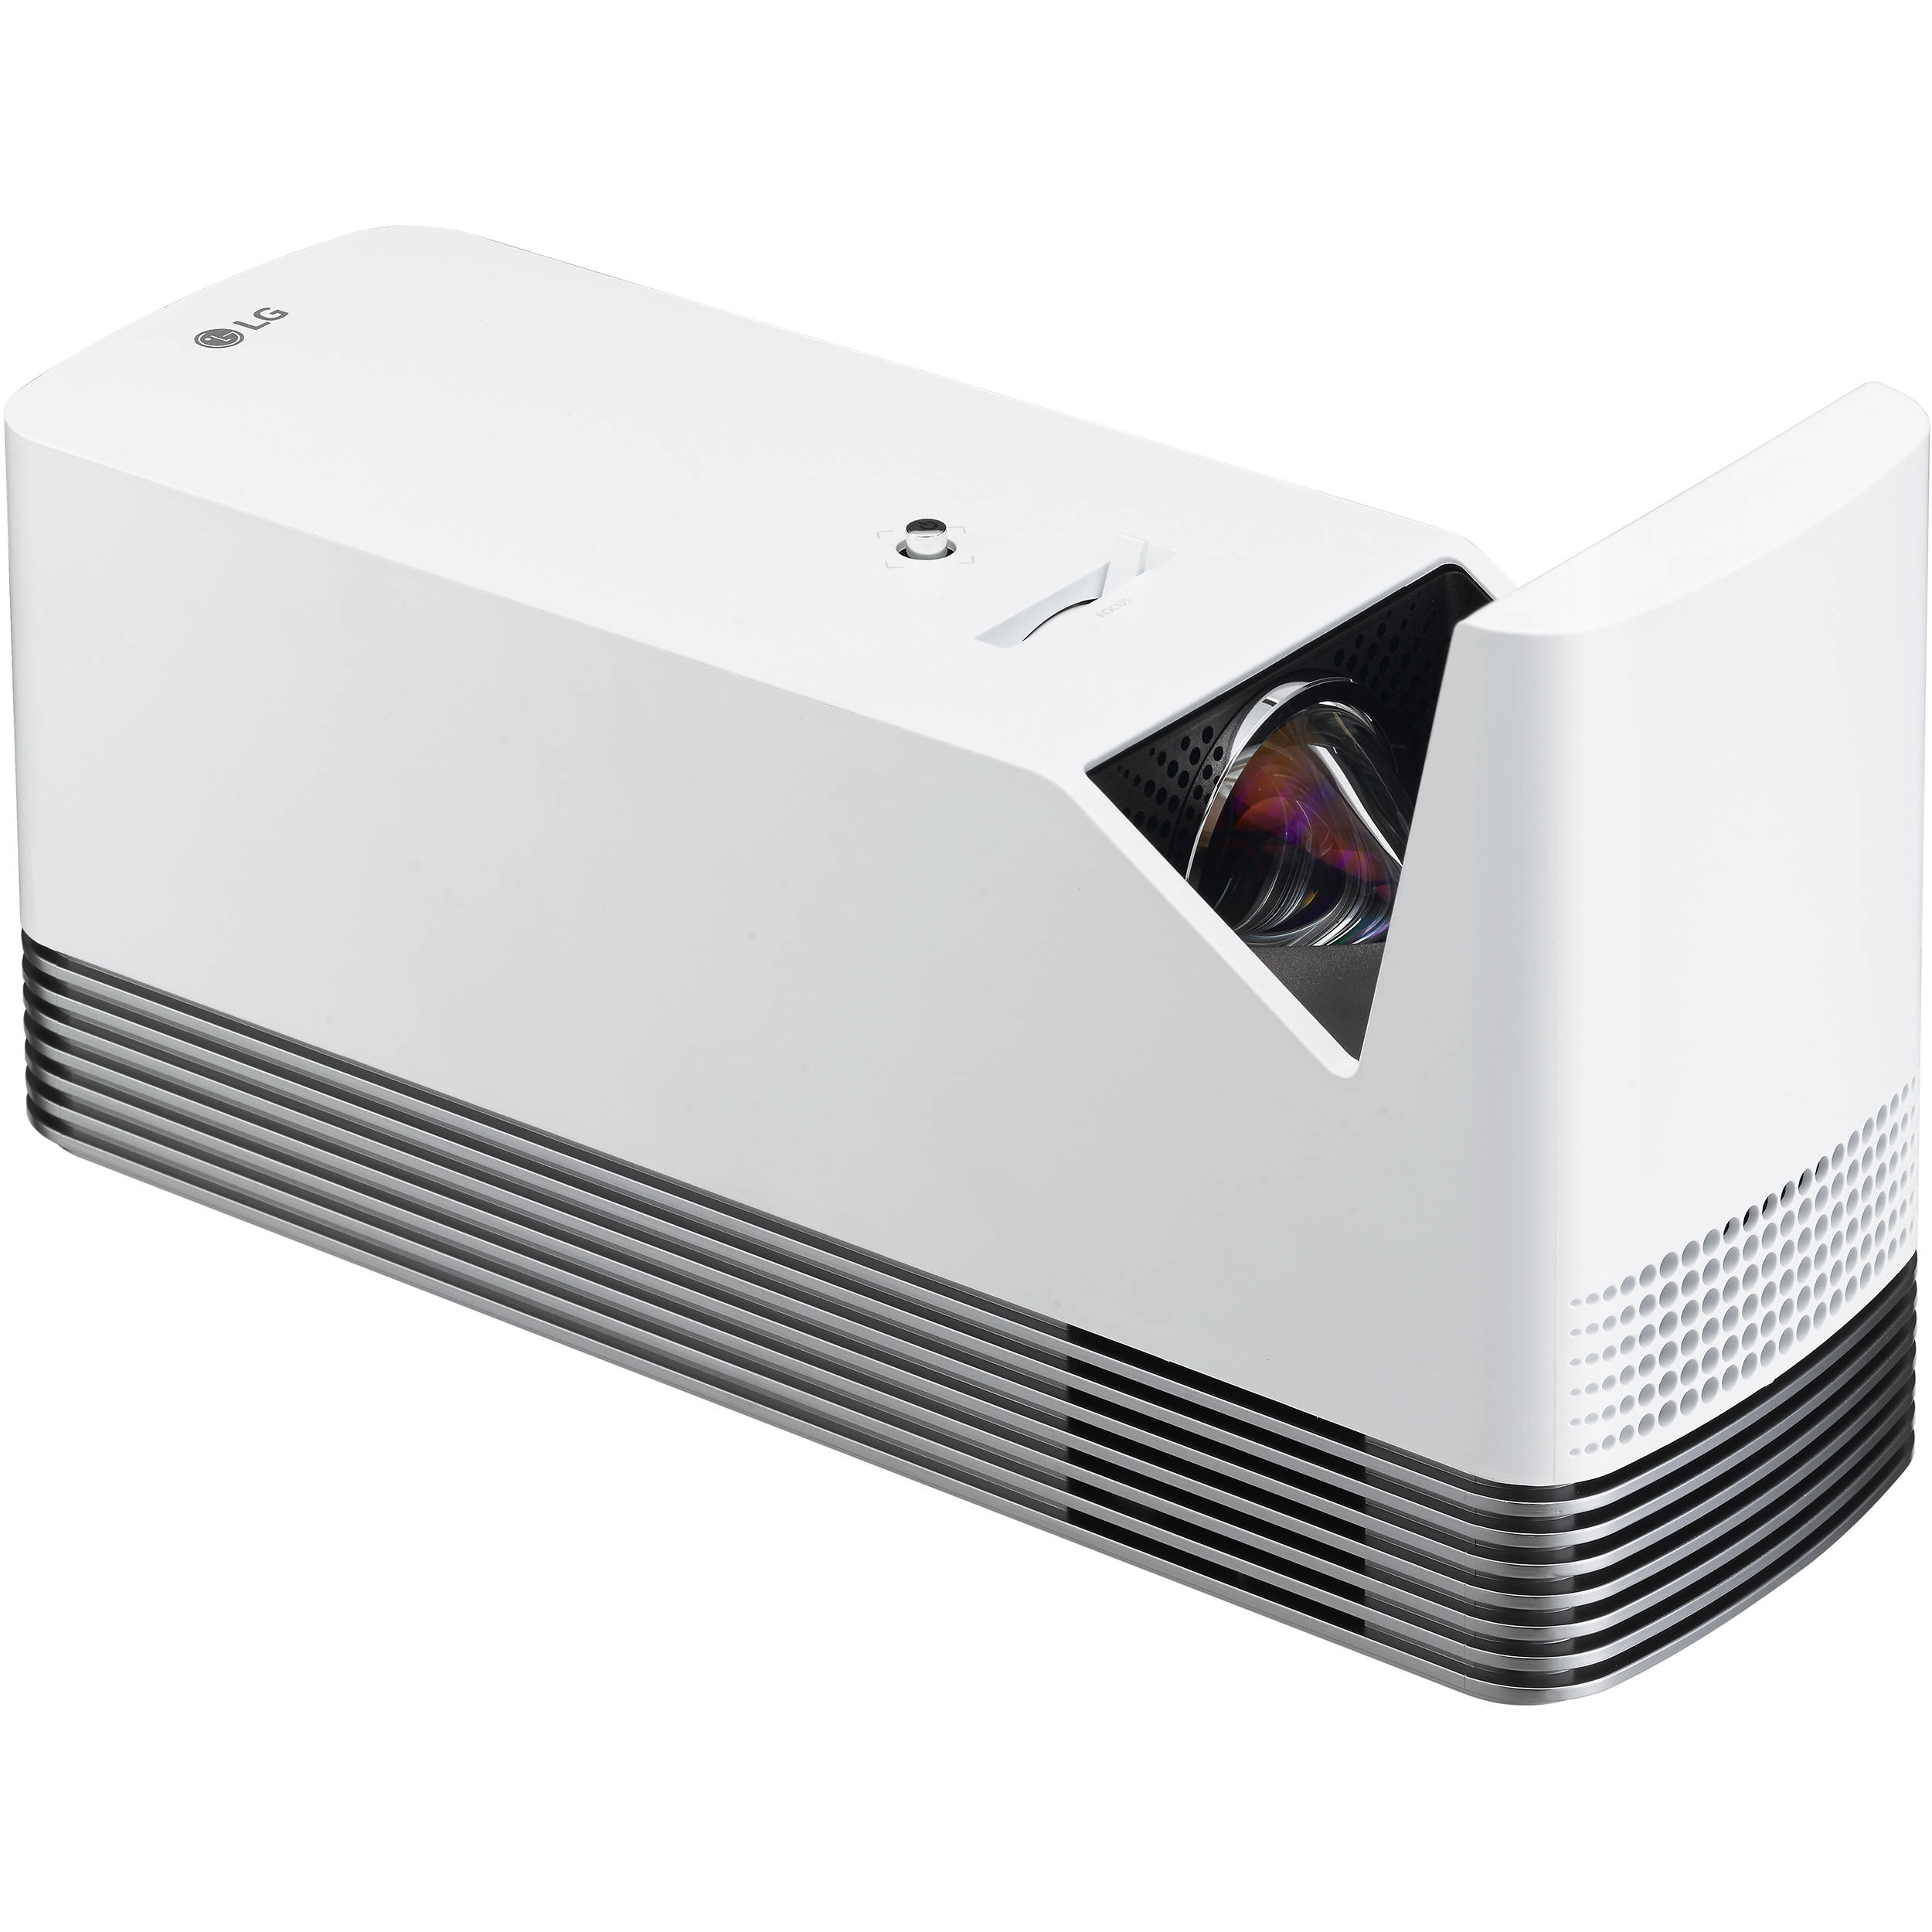 LG HF85JA Full HD Laser DLP Home Theater Projector HF85JA B&H